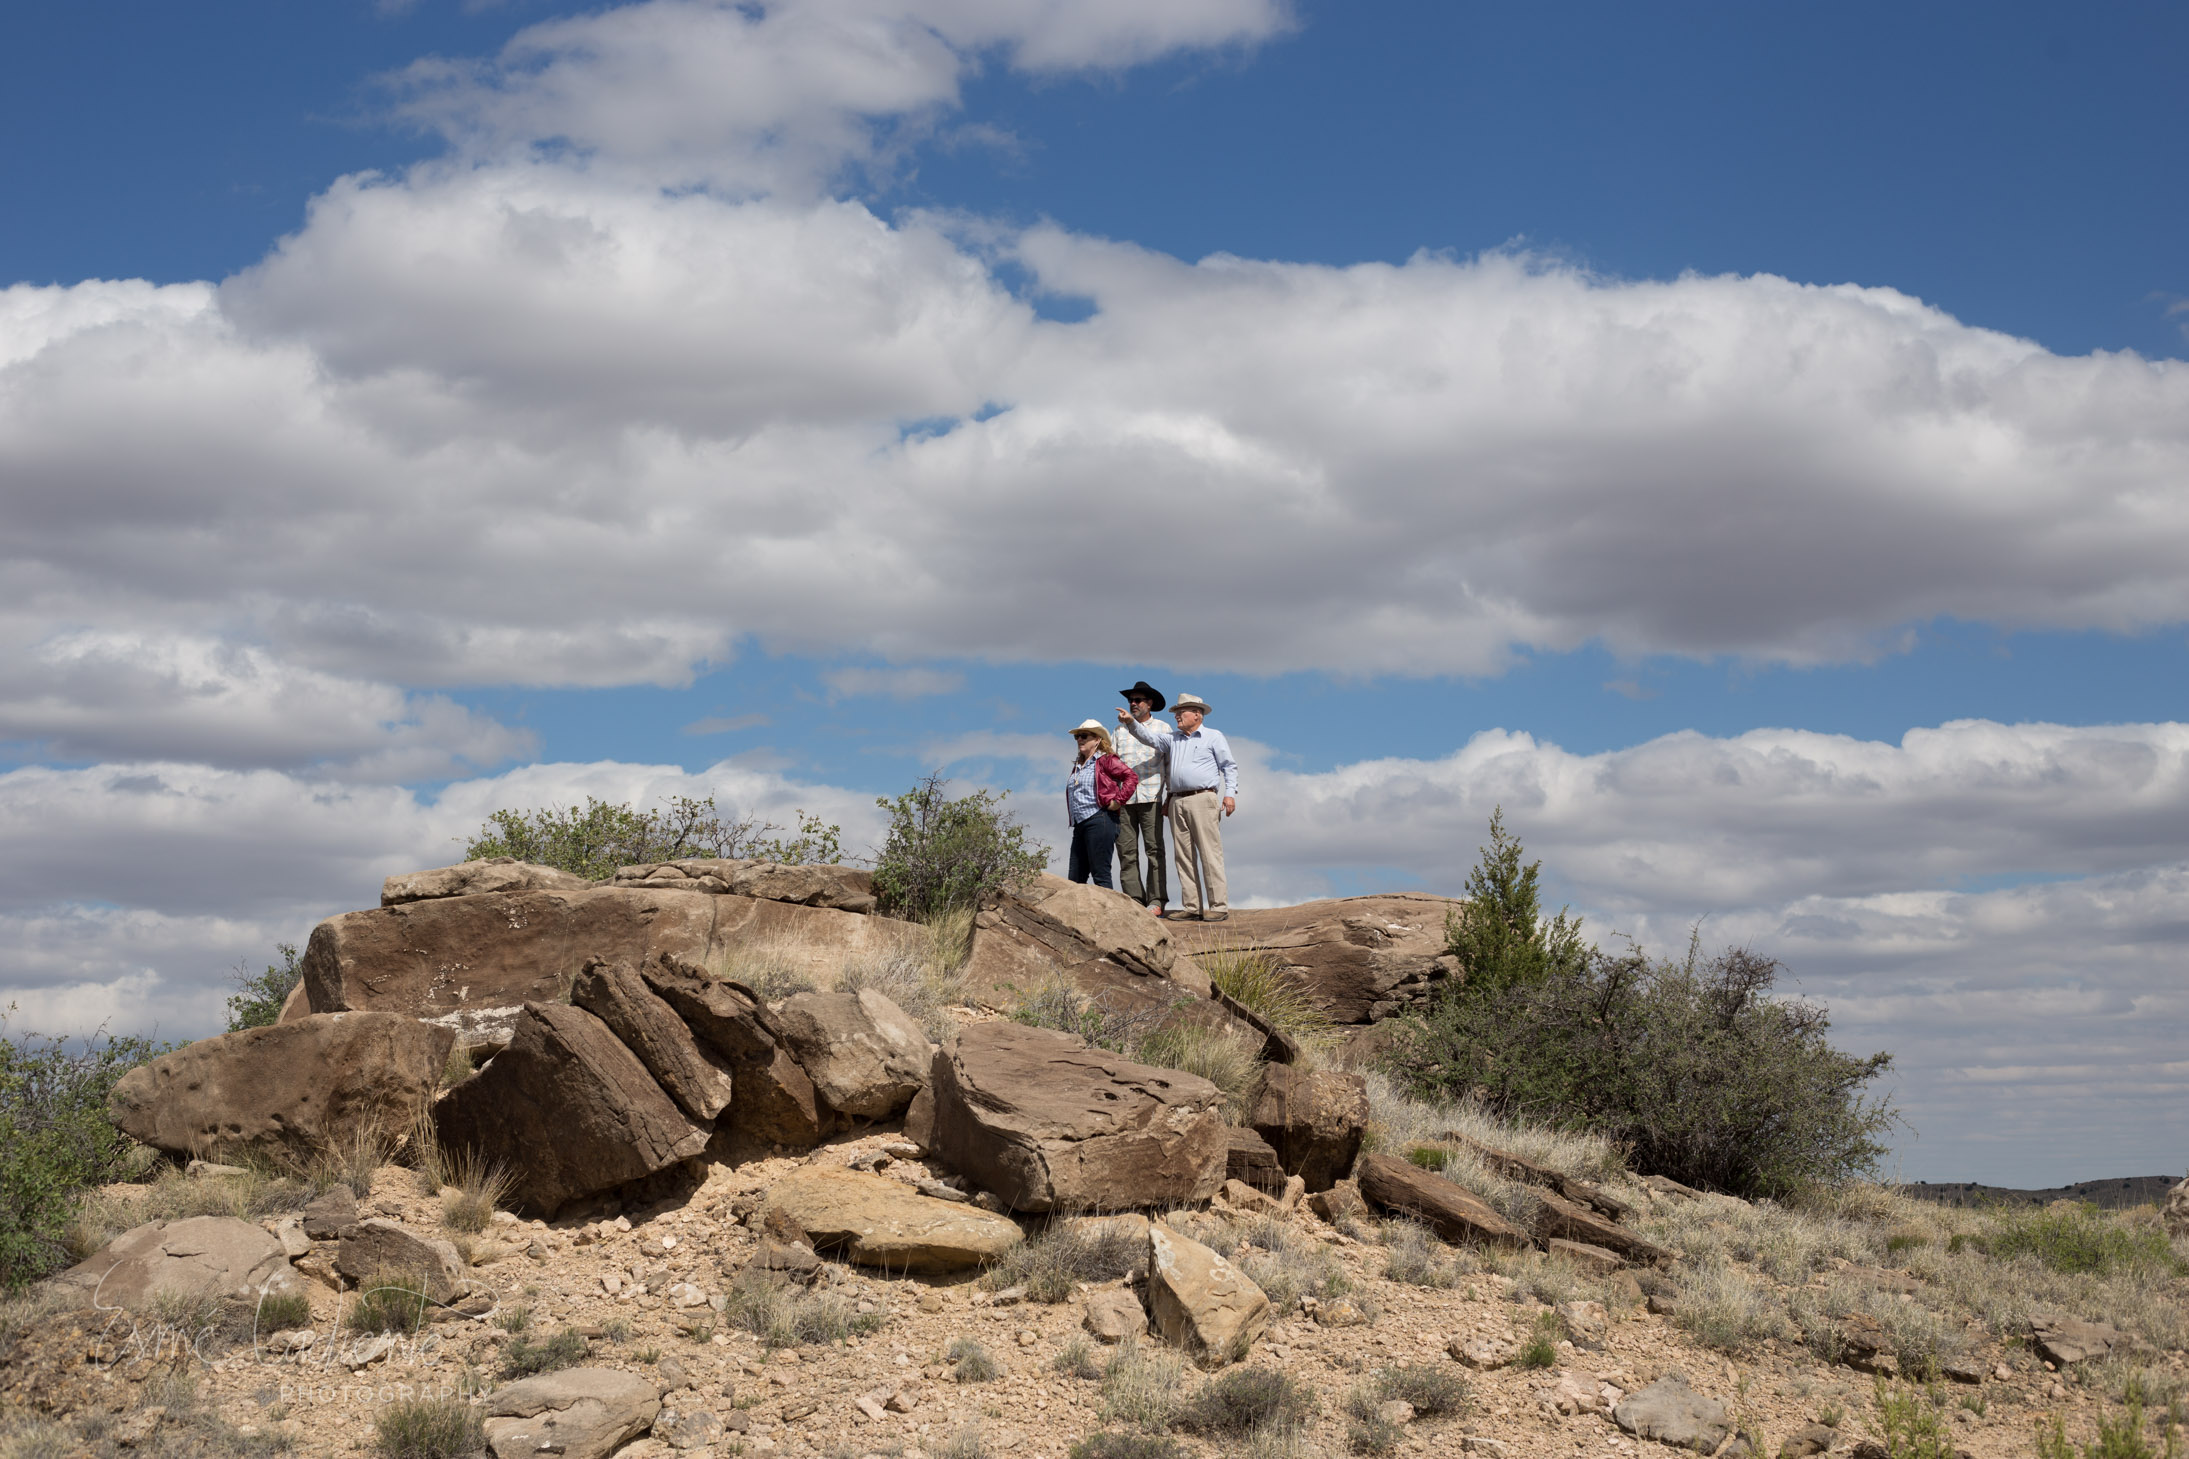 'Rattlesnake Rock'  Rattlesnakes live here, so does the hare and the lizard and the crow. So does the beetle, coyote and the paintbrush and the yucca. So do we.